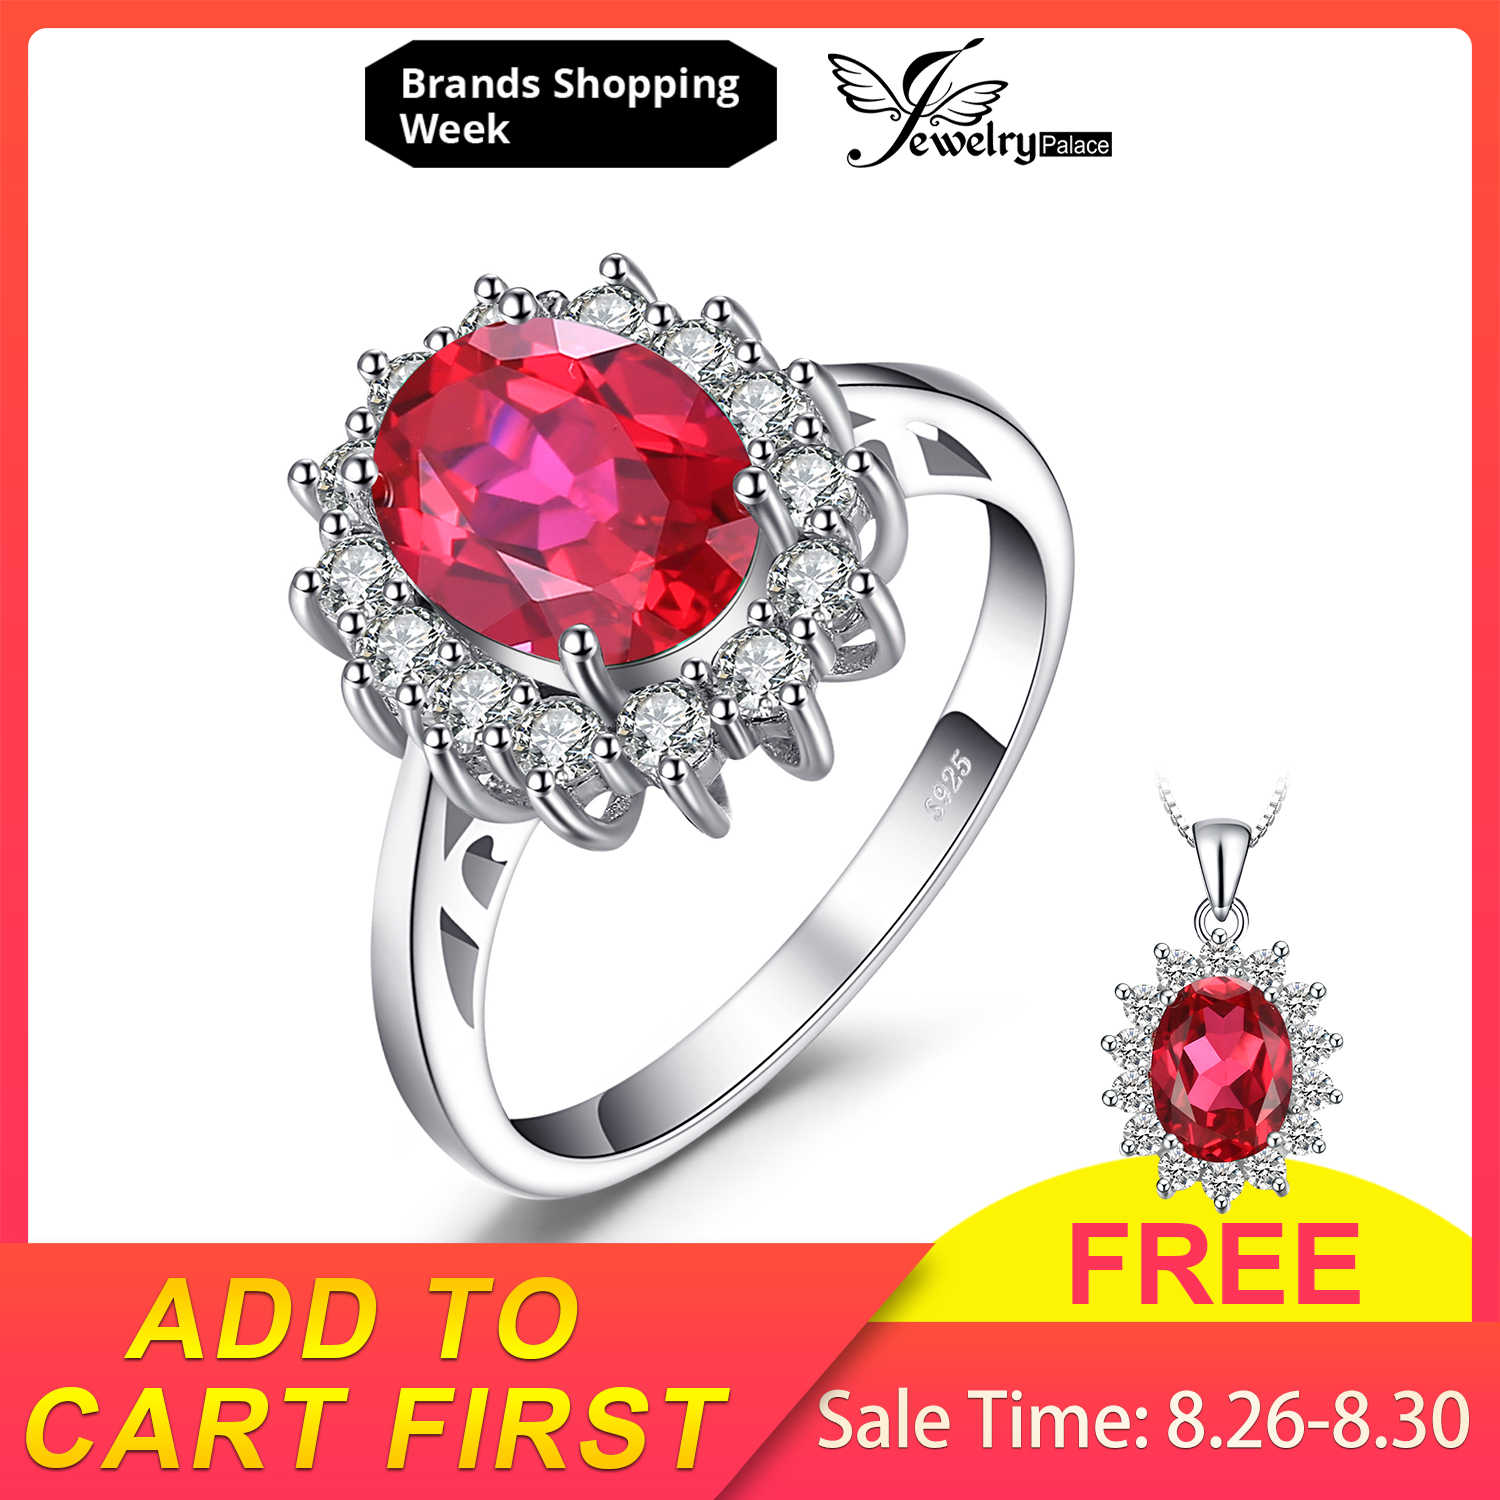 JewelryPalace Princesa Diana William Engagement Criado Red Ruby Anel de Casamento Set Pure Sólida Genuíno 925 Jóias de Prata Esterlina